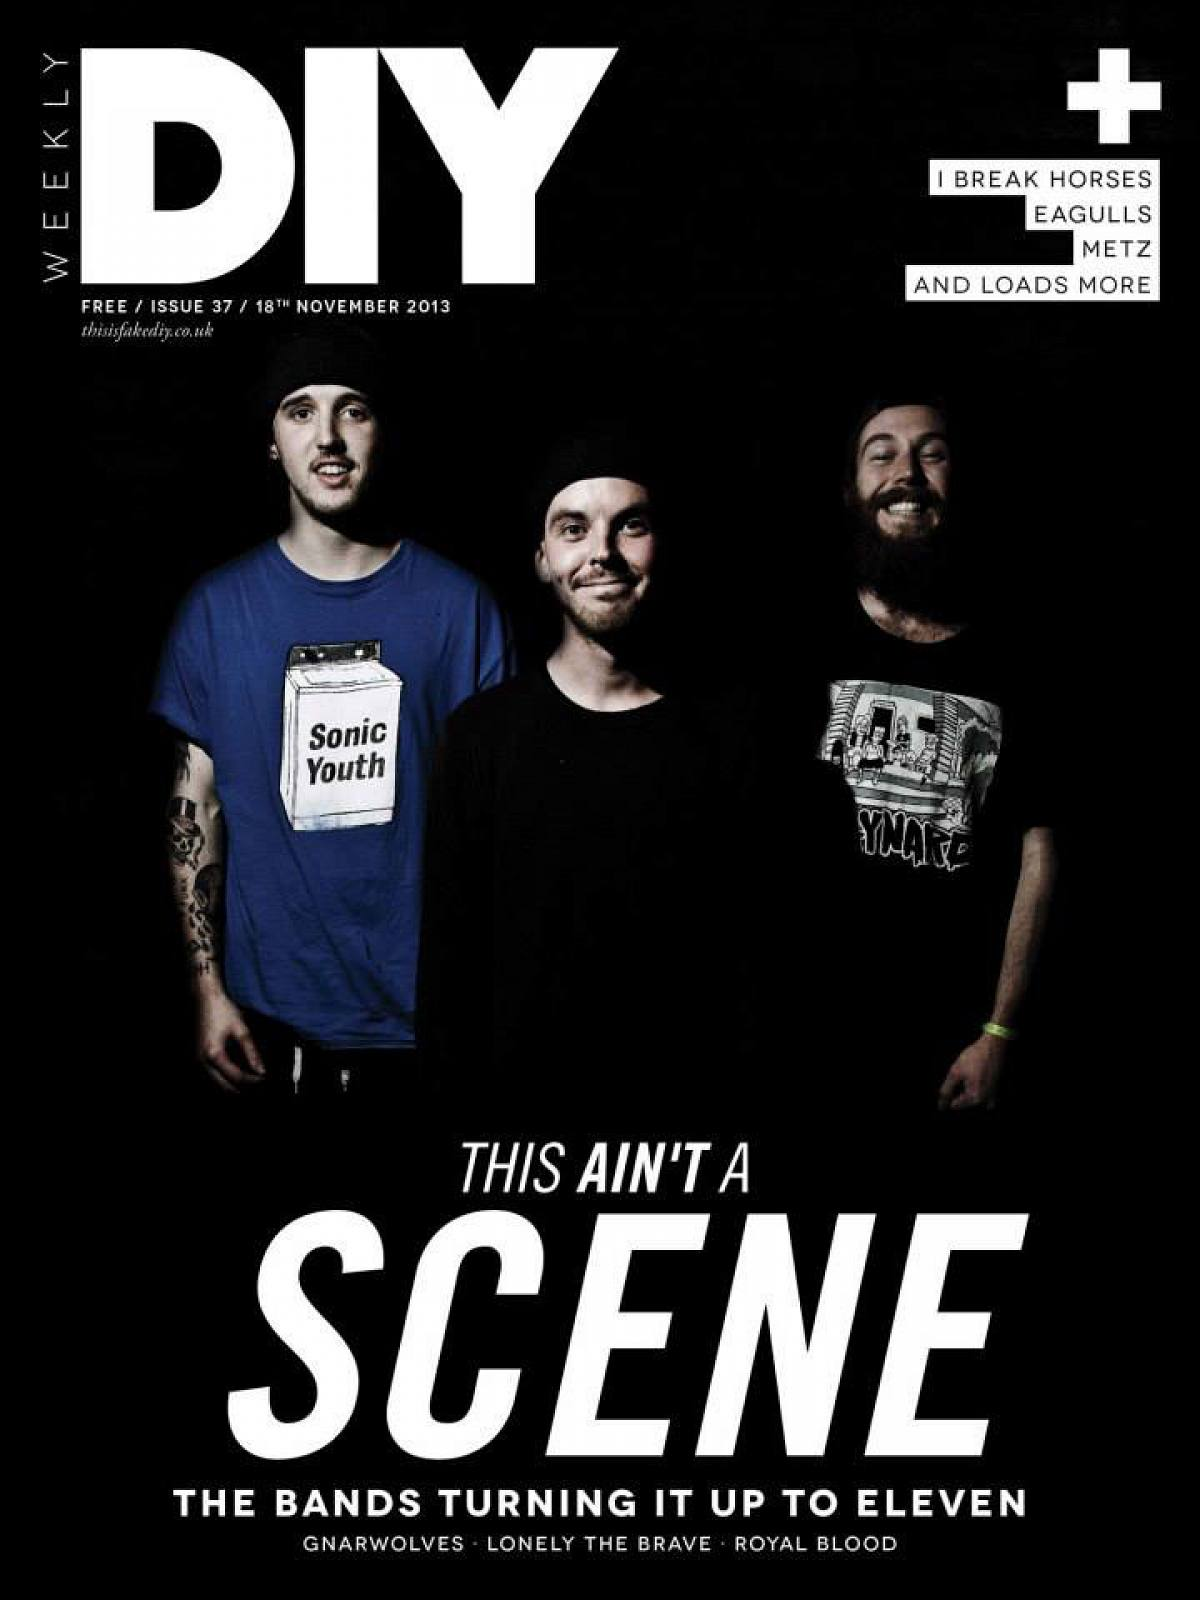 DIY Weekly, 18th November 2013